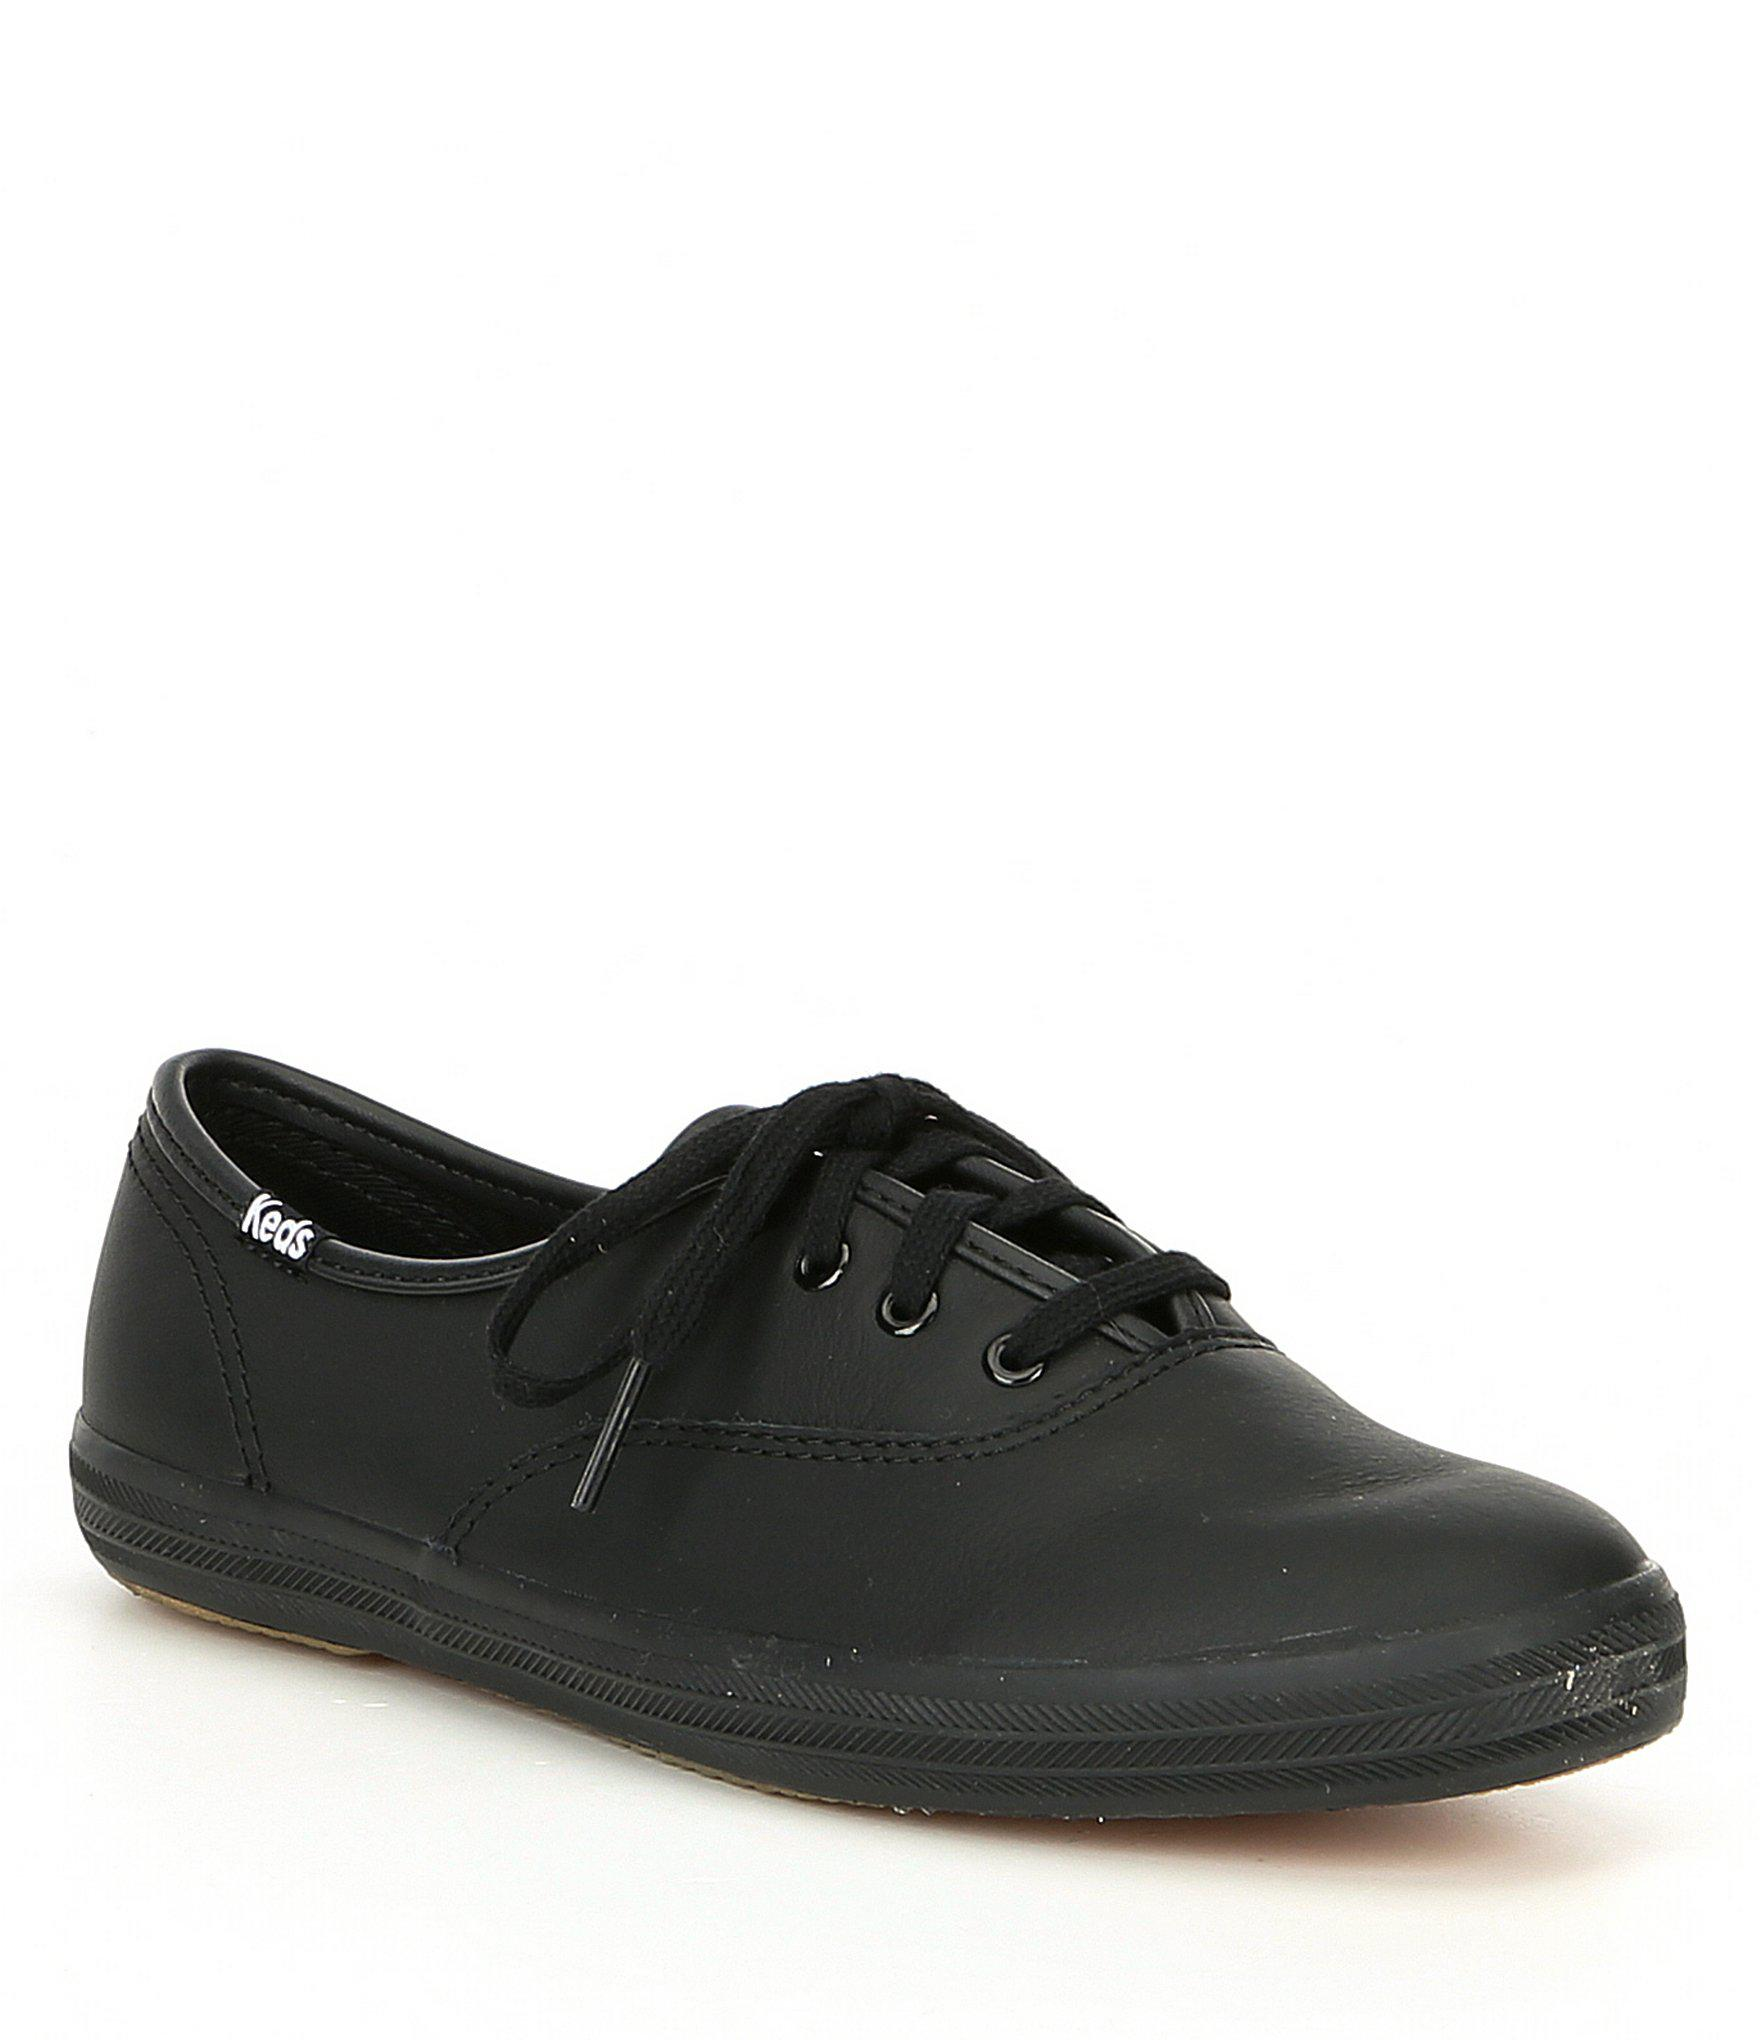 d3e781eff39fca Lyst - Keds Women s Champion Leather Oxford Sneakers in Black